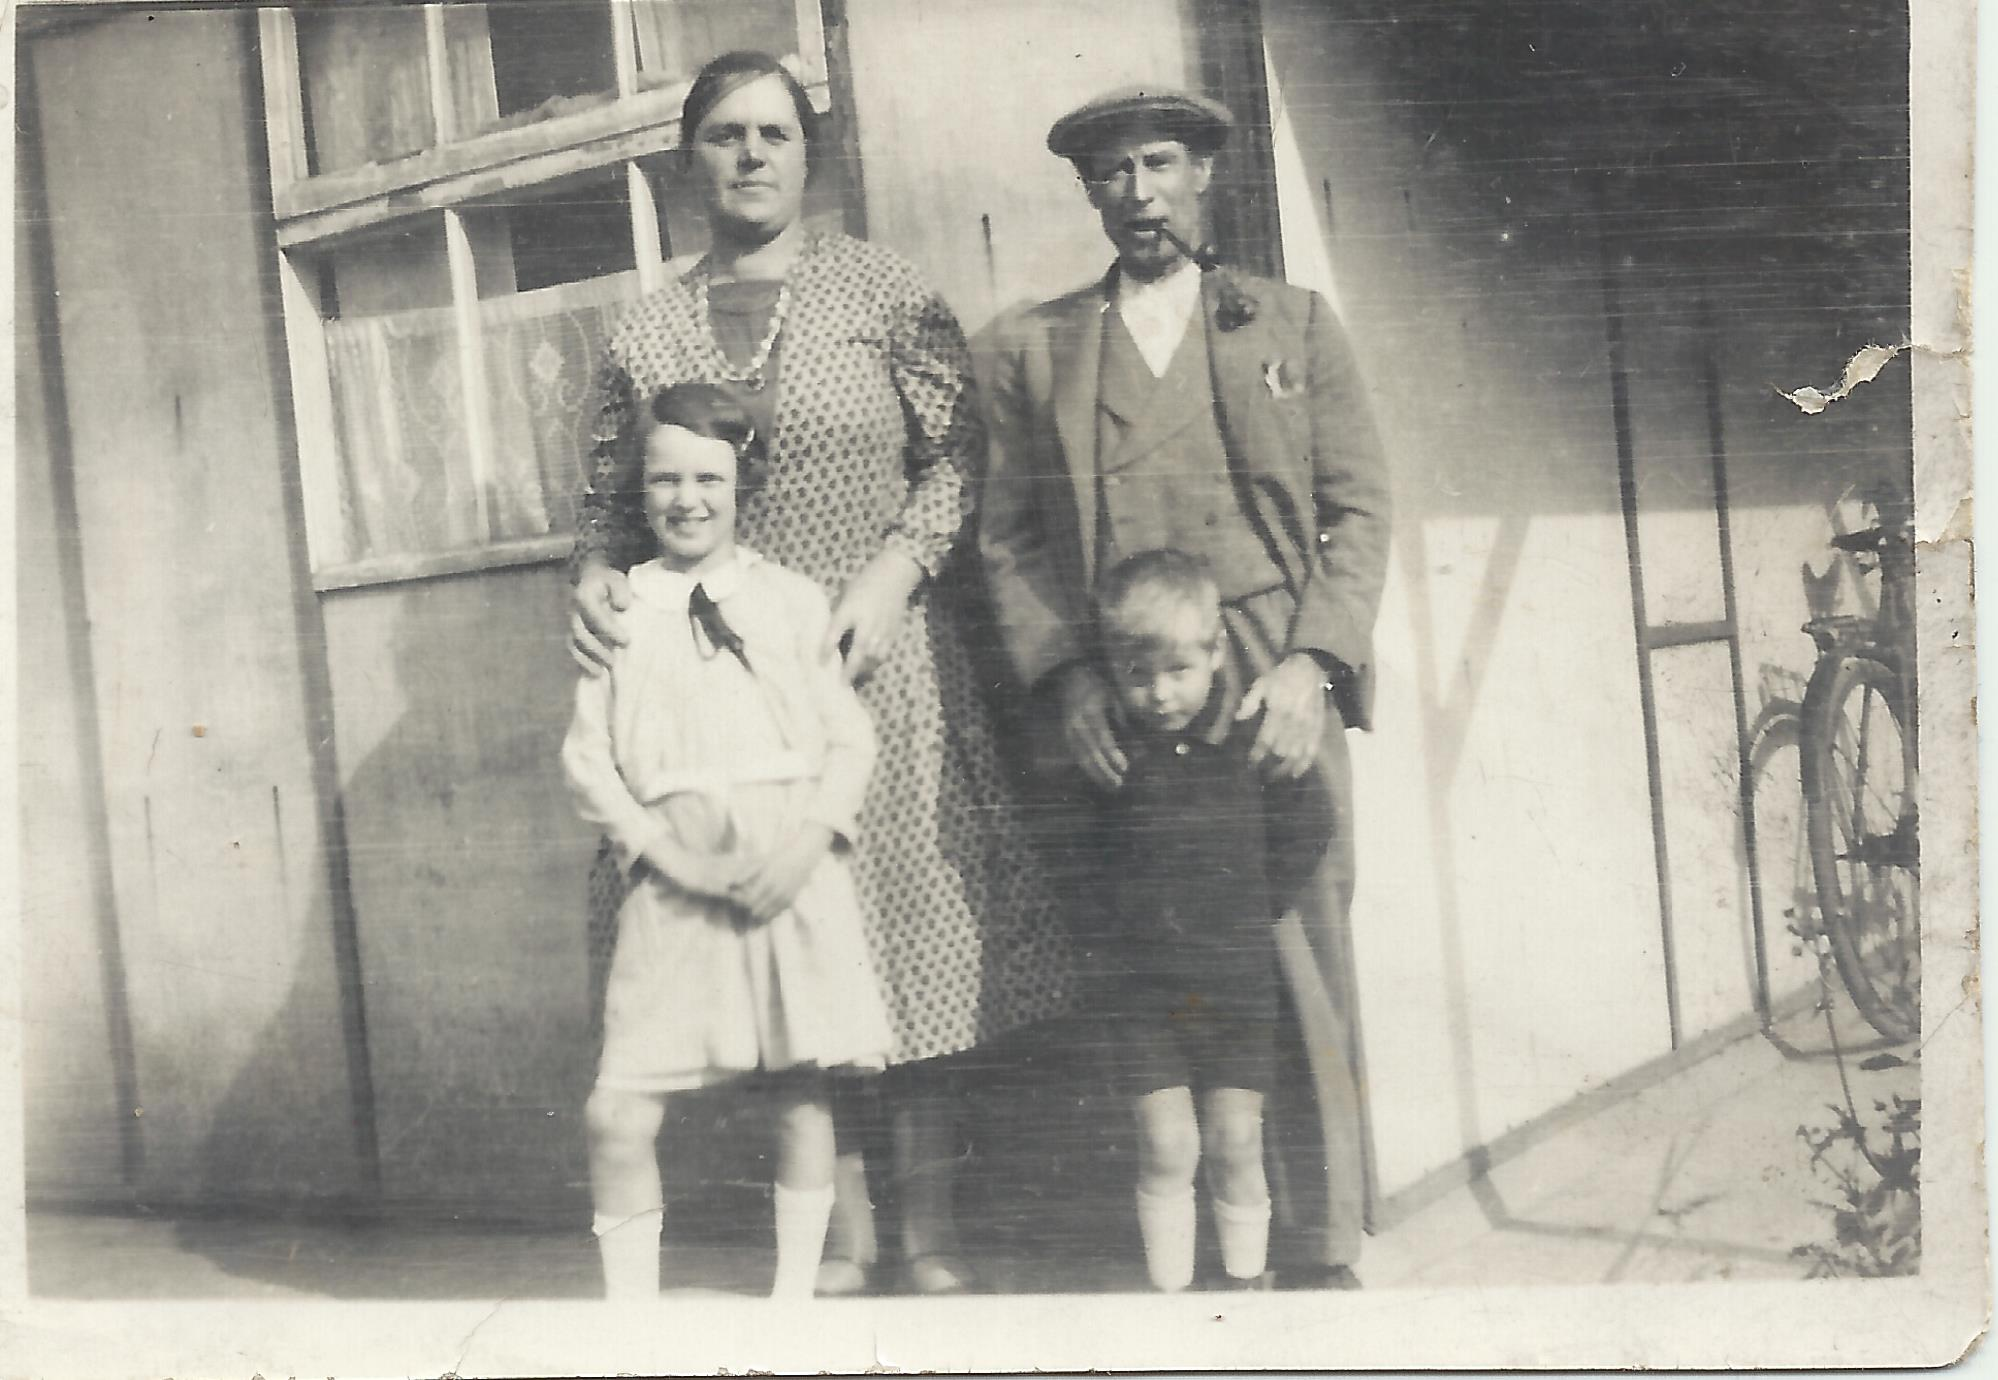 The dress exchange pocklington -  The Girl In A White Dress I Believe Was Evelyn Milner And The Young Boy Was Edwin Scaife We Knew Him As Duke Milner The Older Couple Were Harold And Eva